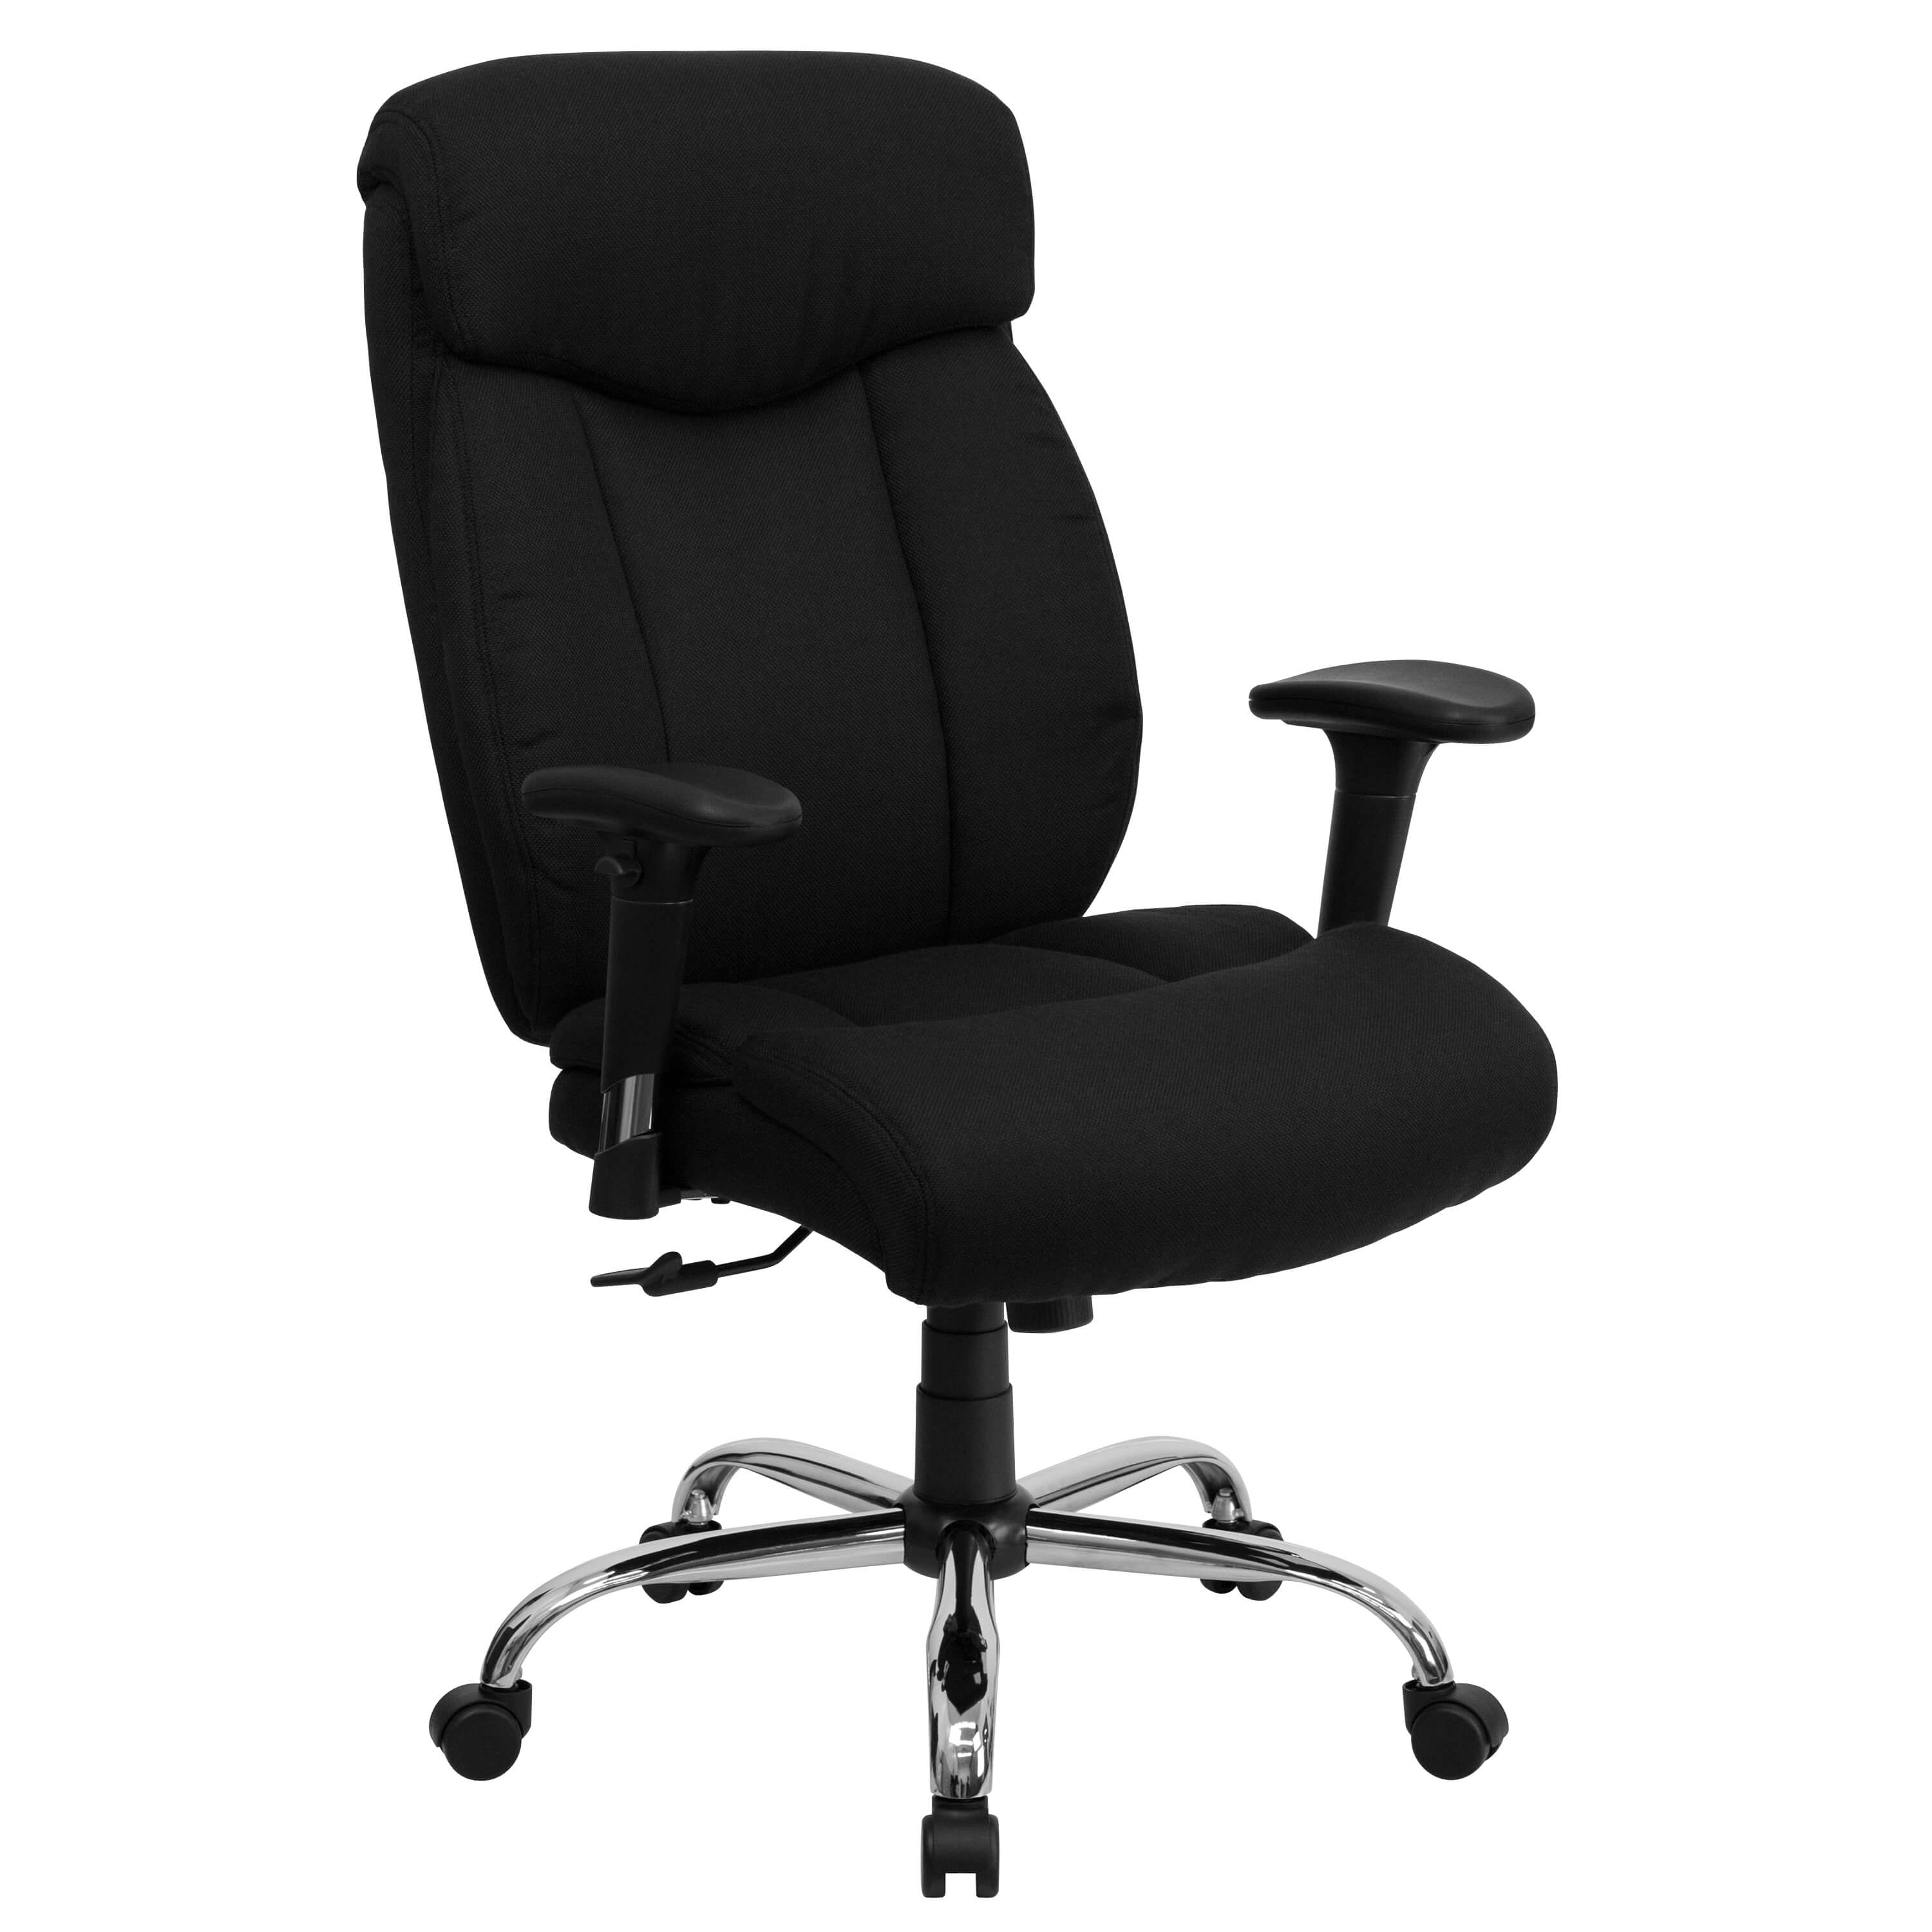 big-and-tall-office-chairs-heavy-duty-ergonomic-office-chairs.jpg